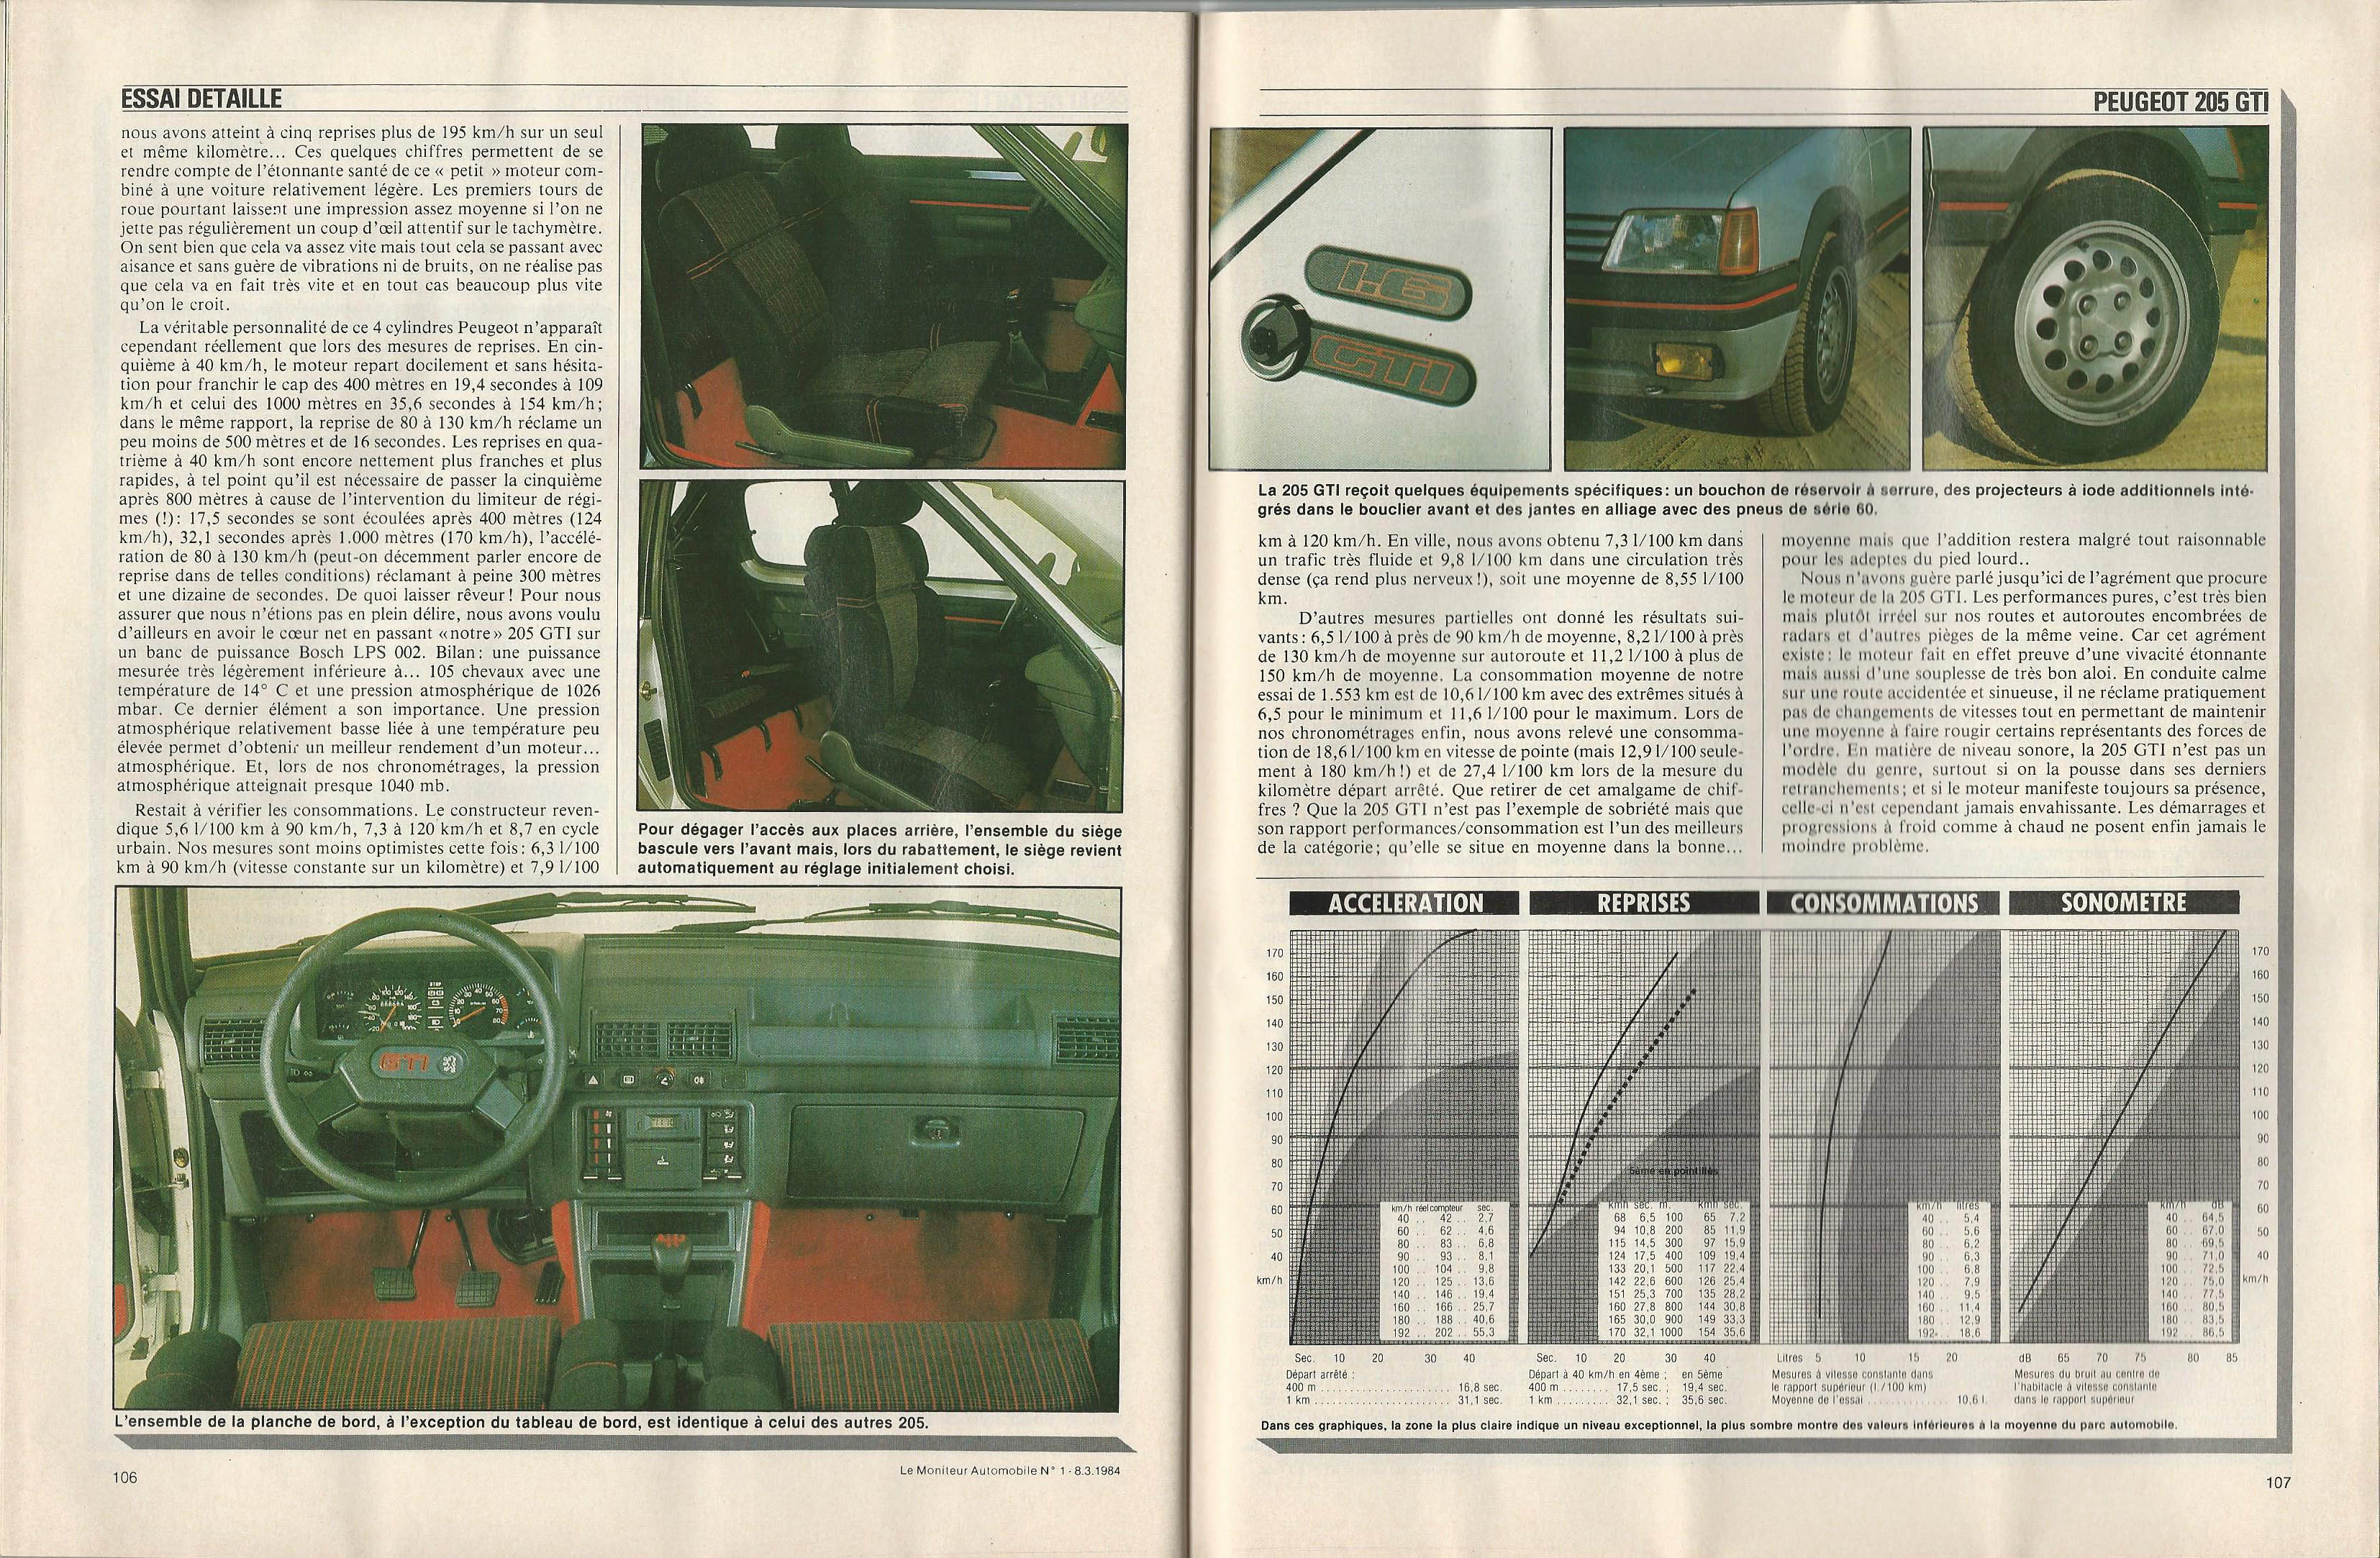 Moniteur Automobile 01 - 08 Mars 1984 (45)